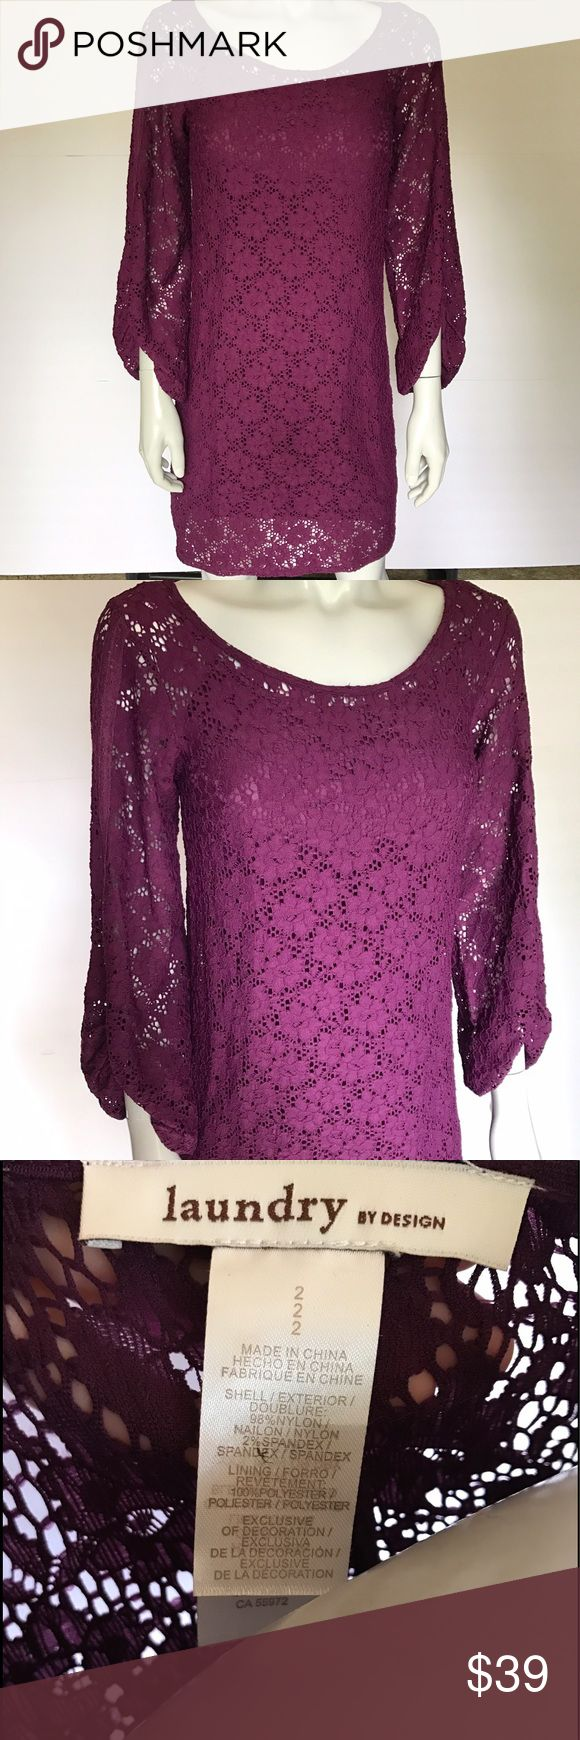 {laundry by design} purple long sleeve dress Pretty purple dress with lace overlay. Unique sleeves. Beautiful, stylish dress can be dressed up or down. Laundry by Design Dresses Long Sleeve